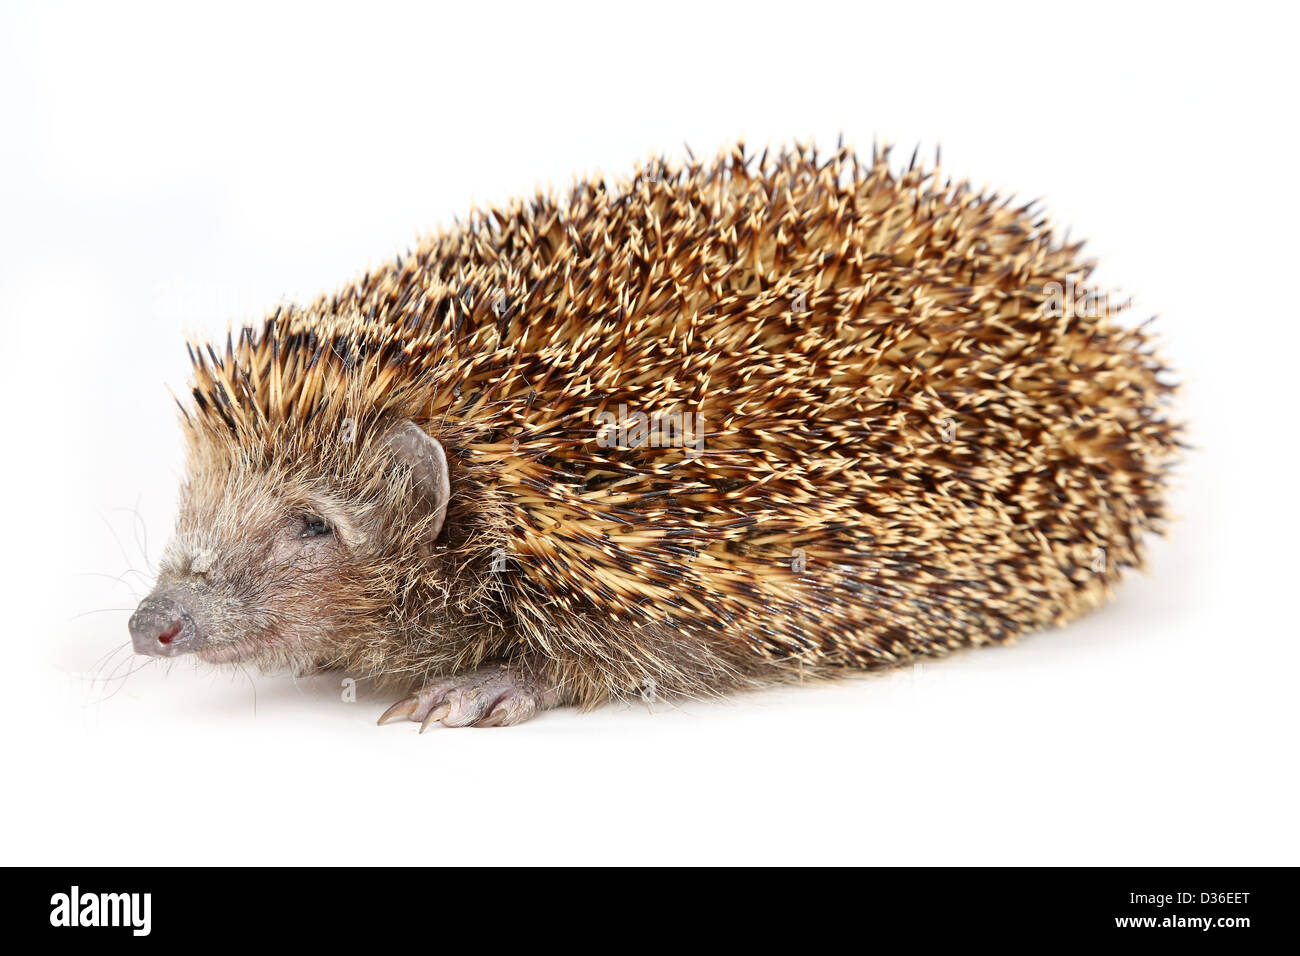 Adorable hedgehog walking and sniiffing seen from the side in front of white background - Stock Image